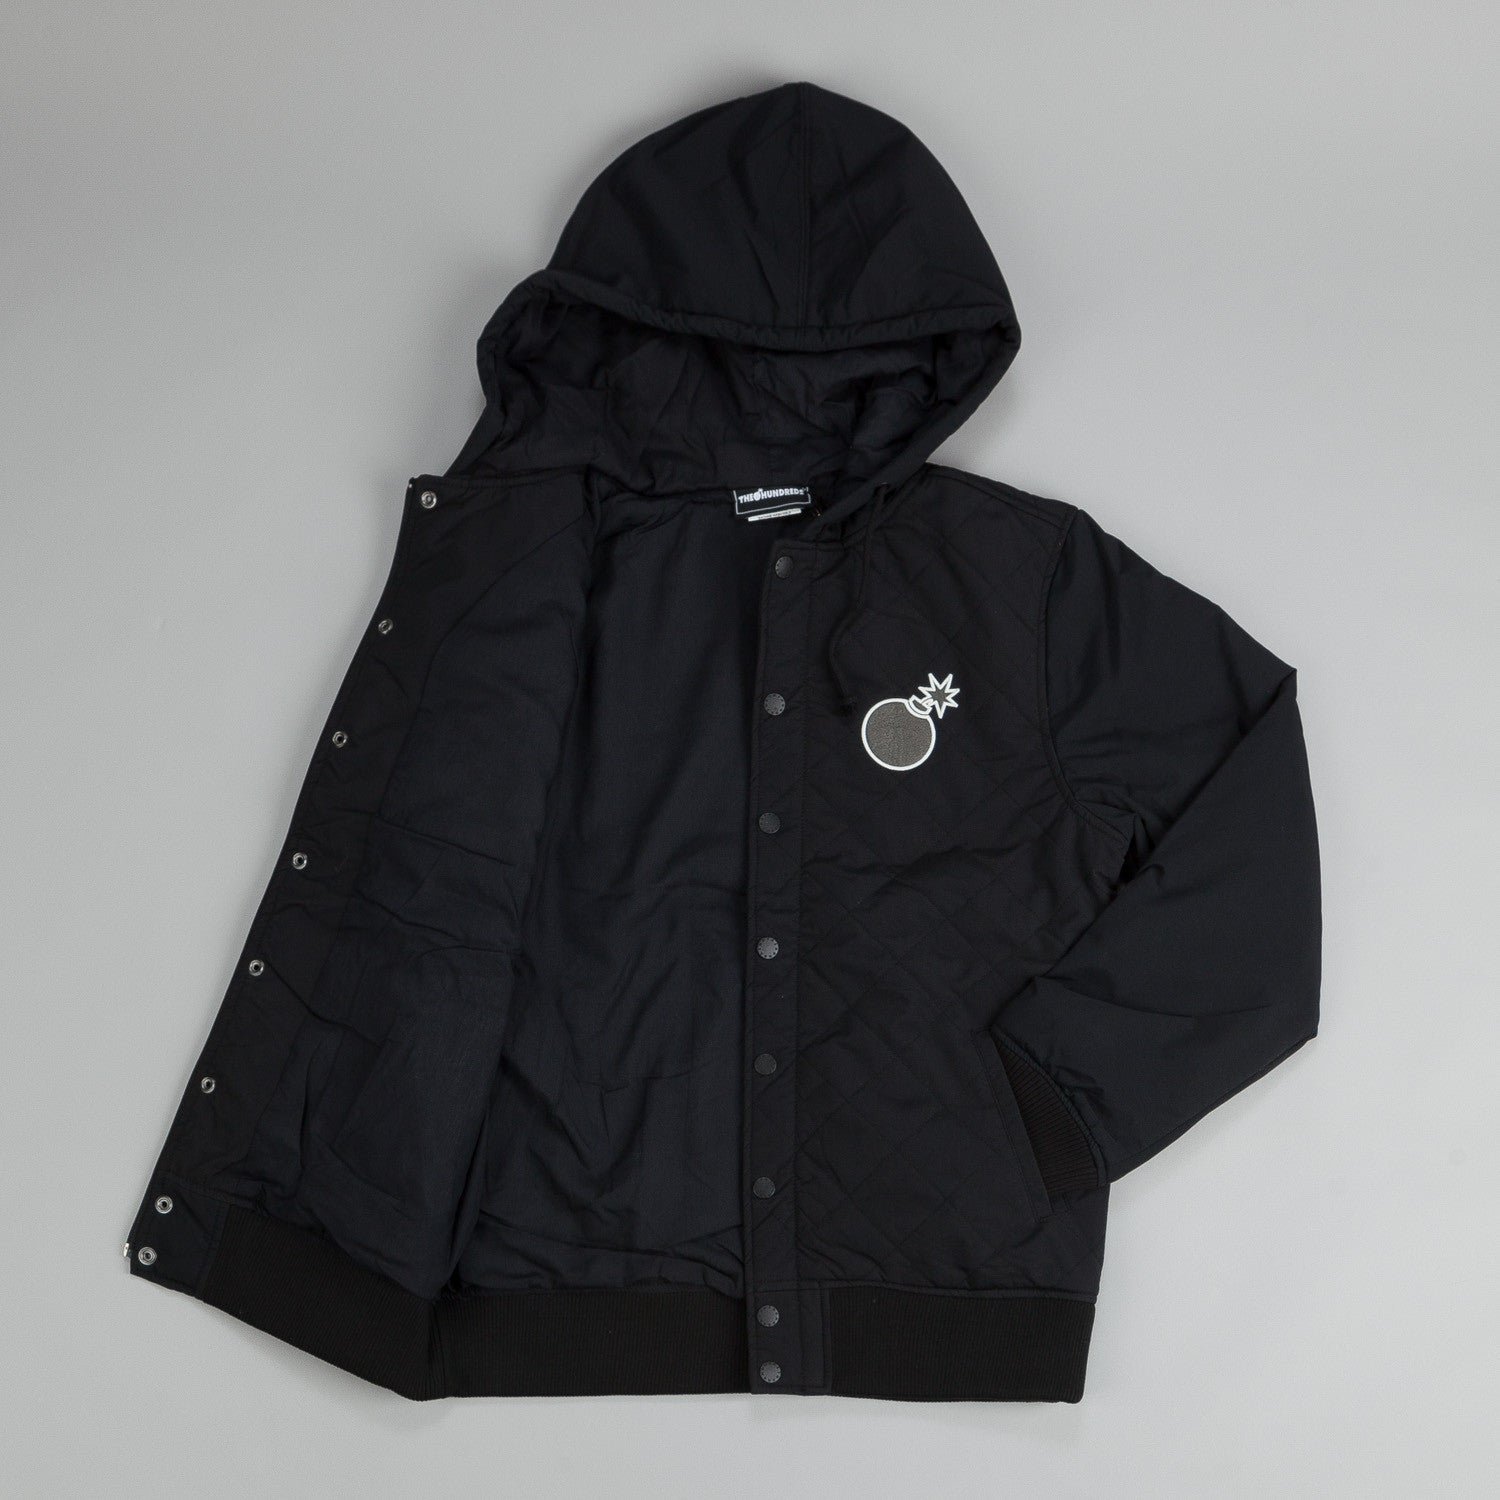 The Hundreds Tour Jacket Black